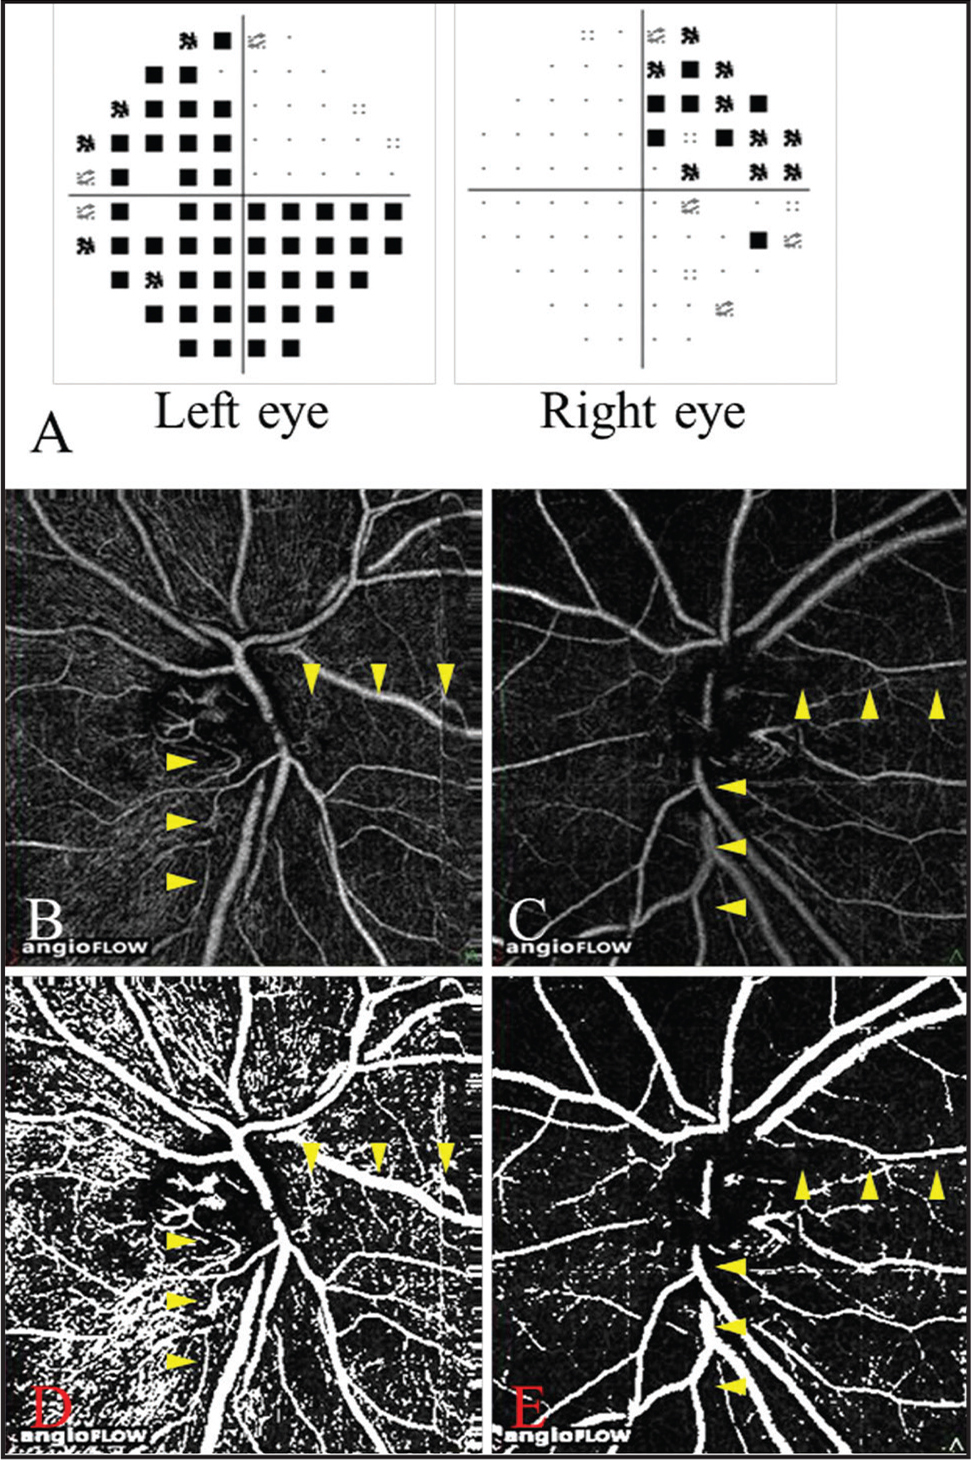 Visual field (VF) findings and optical coherence tomography (OCT) angiograms in Case 4. A 49-year-old male patient with pituitary adenoma. He underwent tumor resection 6 months prior to this study. Pattern deviation using the Humphrey Field Analyzer (A). The VF testing showed an upper temporal VF defect in the right eye and a temporal and lower nasal VF defect in the left eye. OCT angiograms of the disc of the right eye (B) and of the left eye (C). The retinal perfusion was decreased in the retina (arrowhead) in both eyes. Binarized OCT angiograms of the disc of the right eye (D) and of the left eye (E). The retinal perfusion was decreased in the retina (arrowhead) corresponding to the quadrants of the VF defects in both eyes.